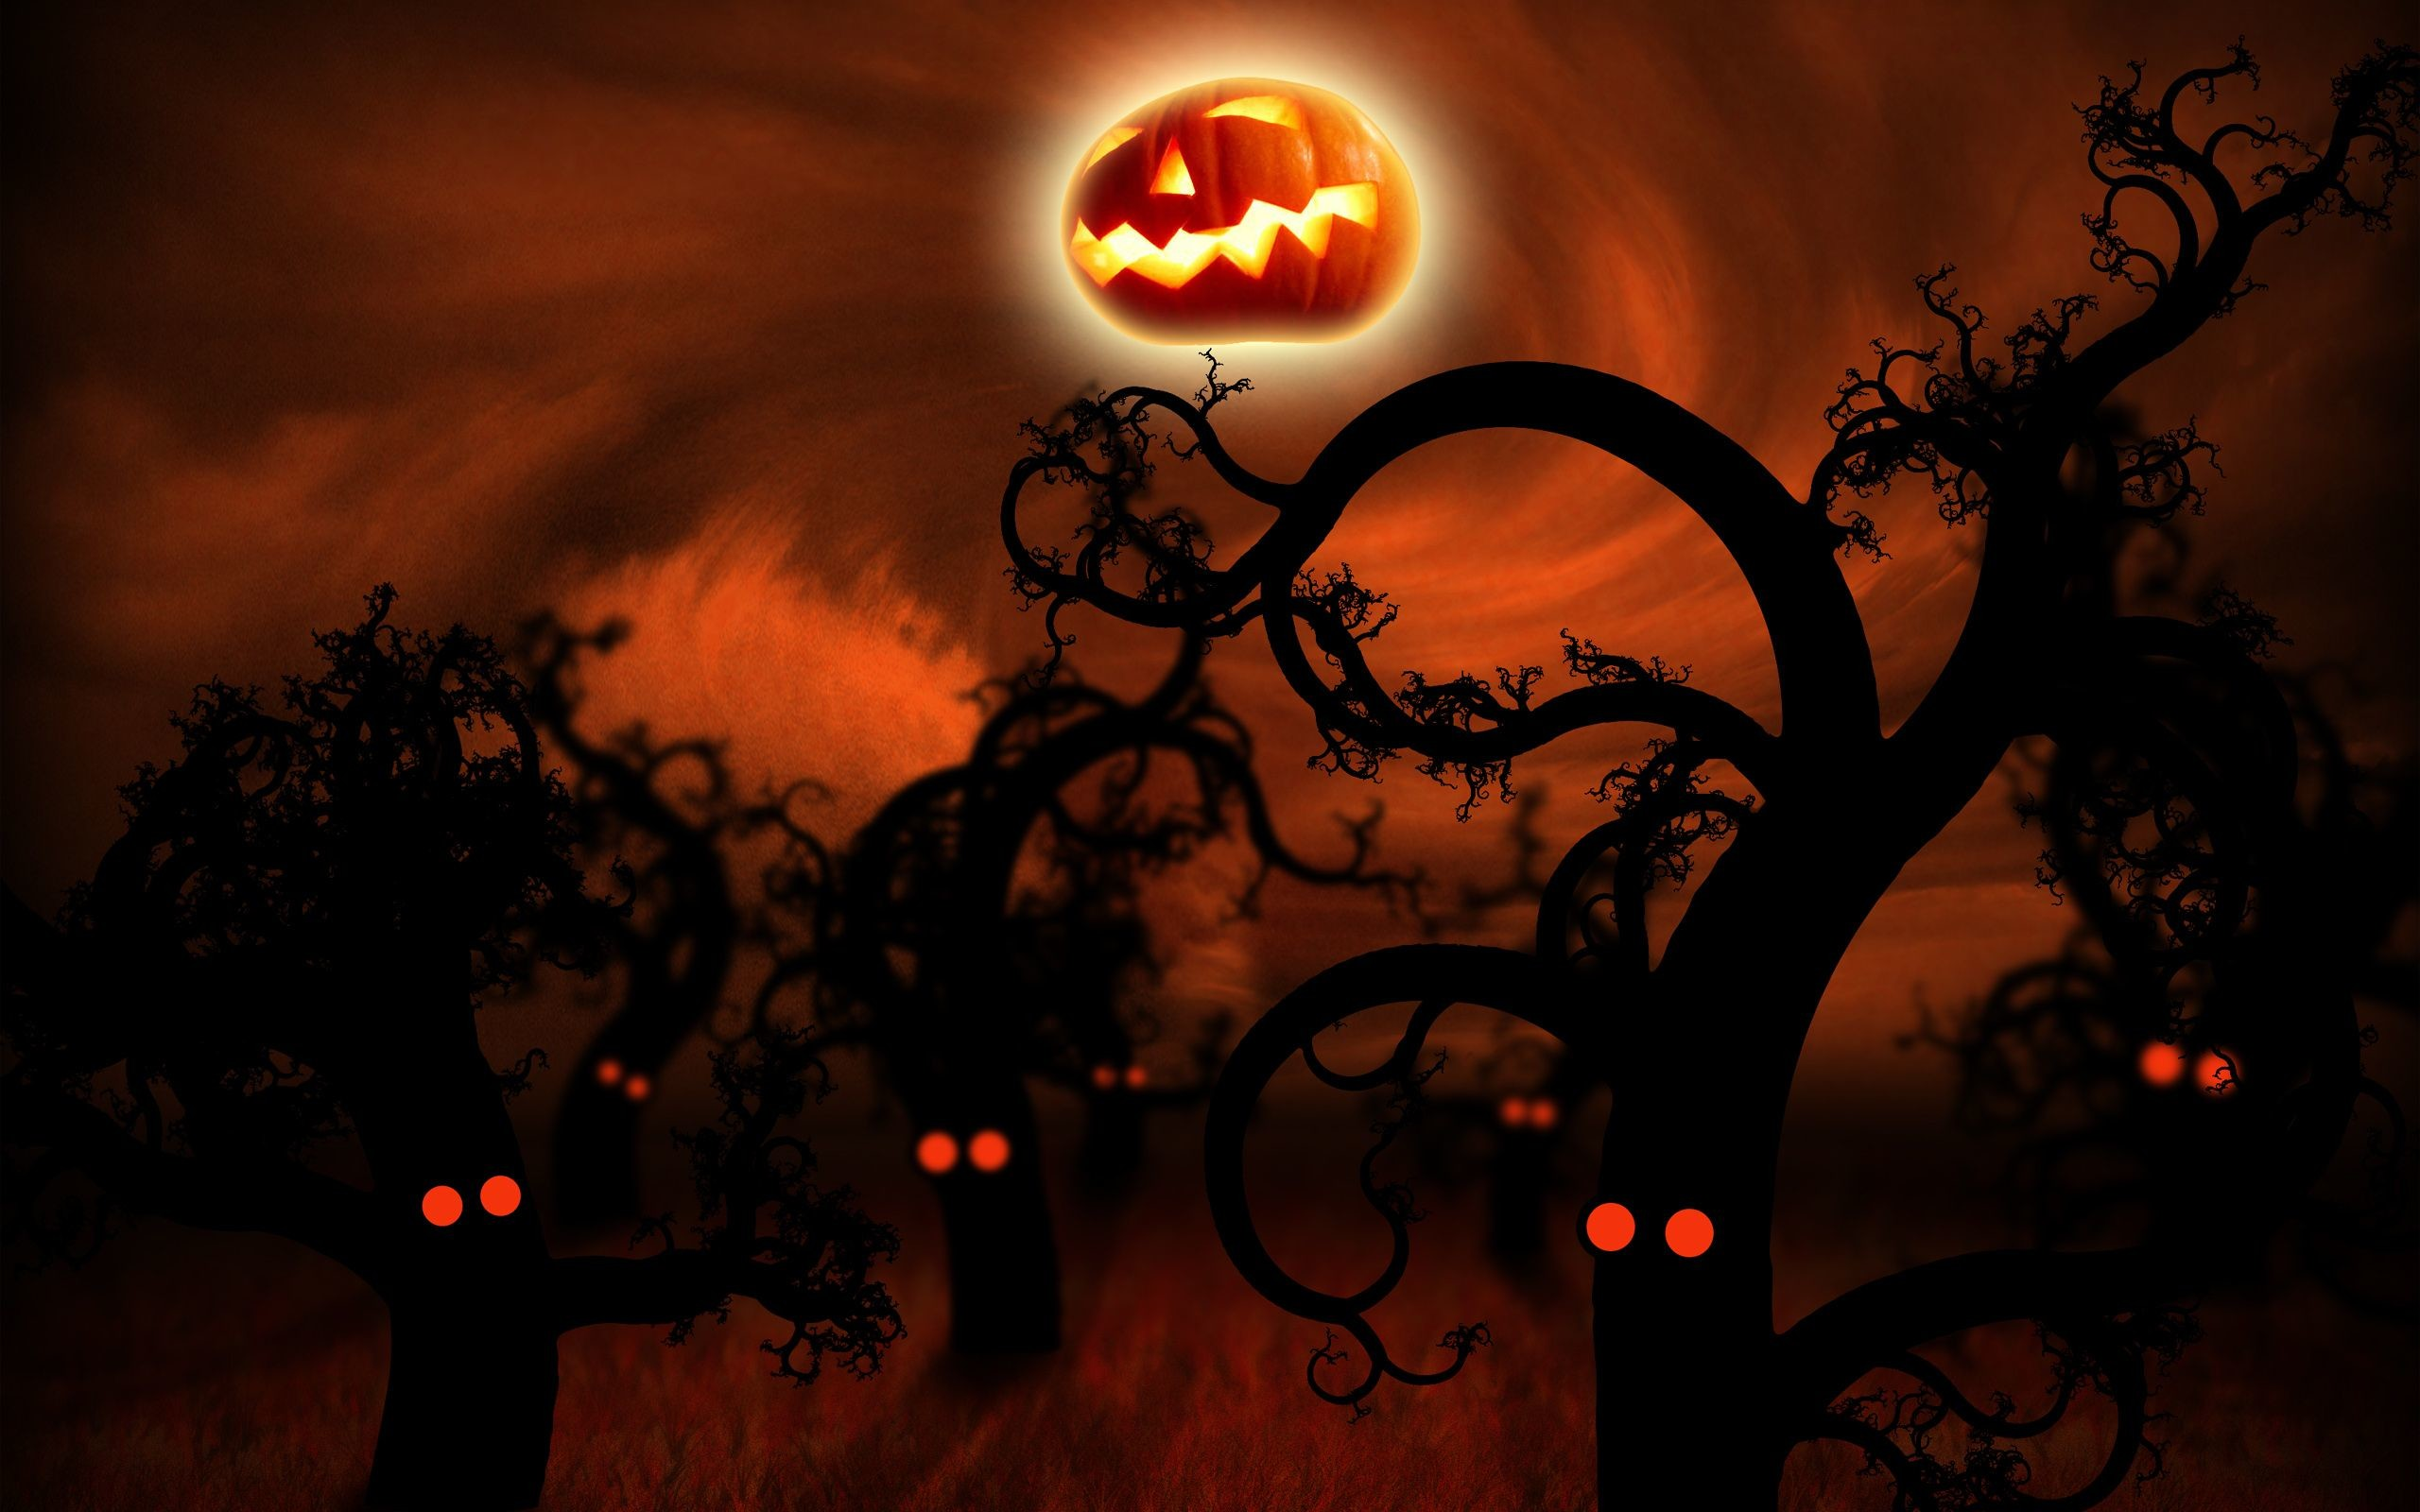 2560x1600 Halloween Wide Screen Wallpaper HD.